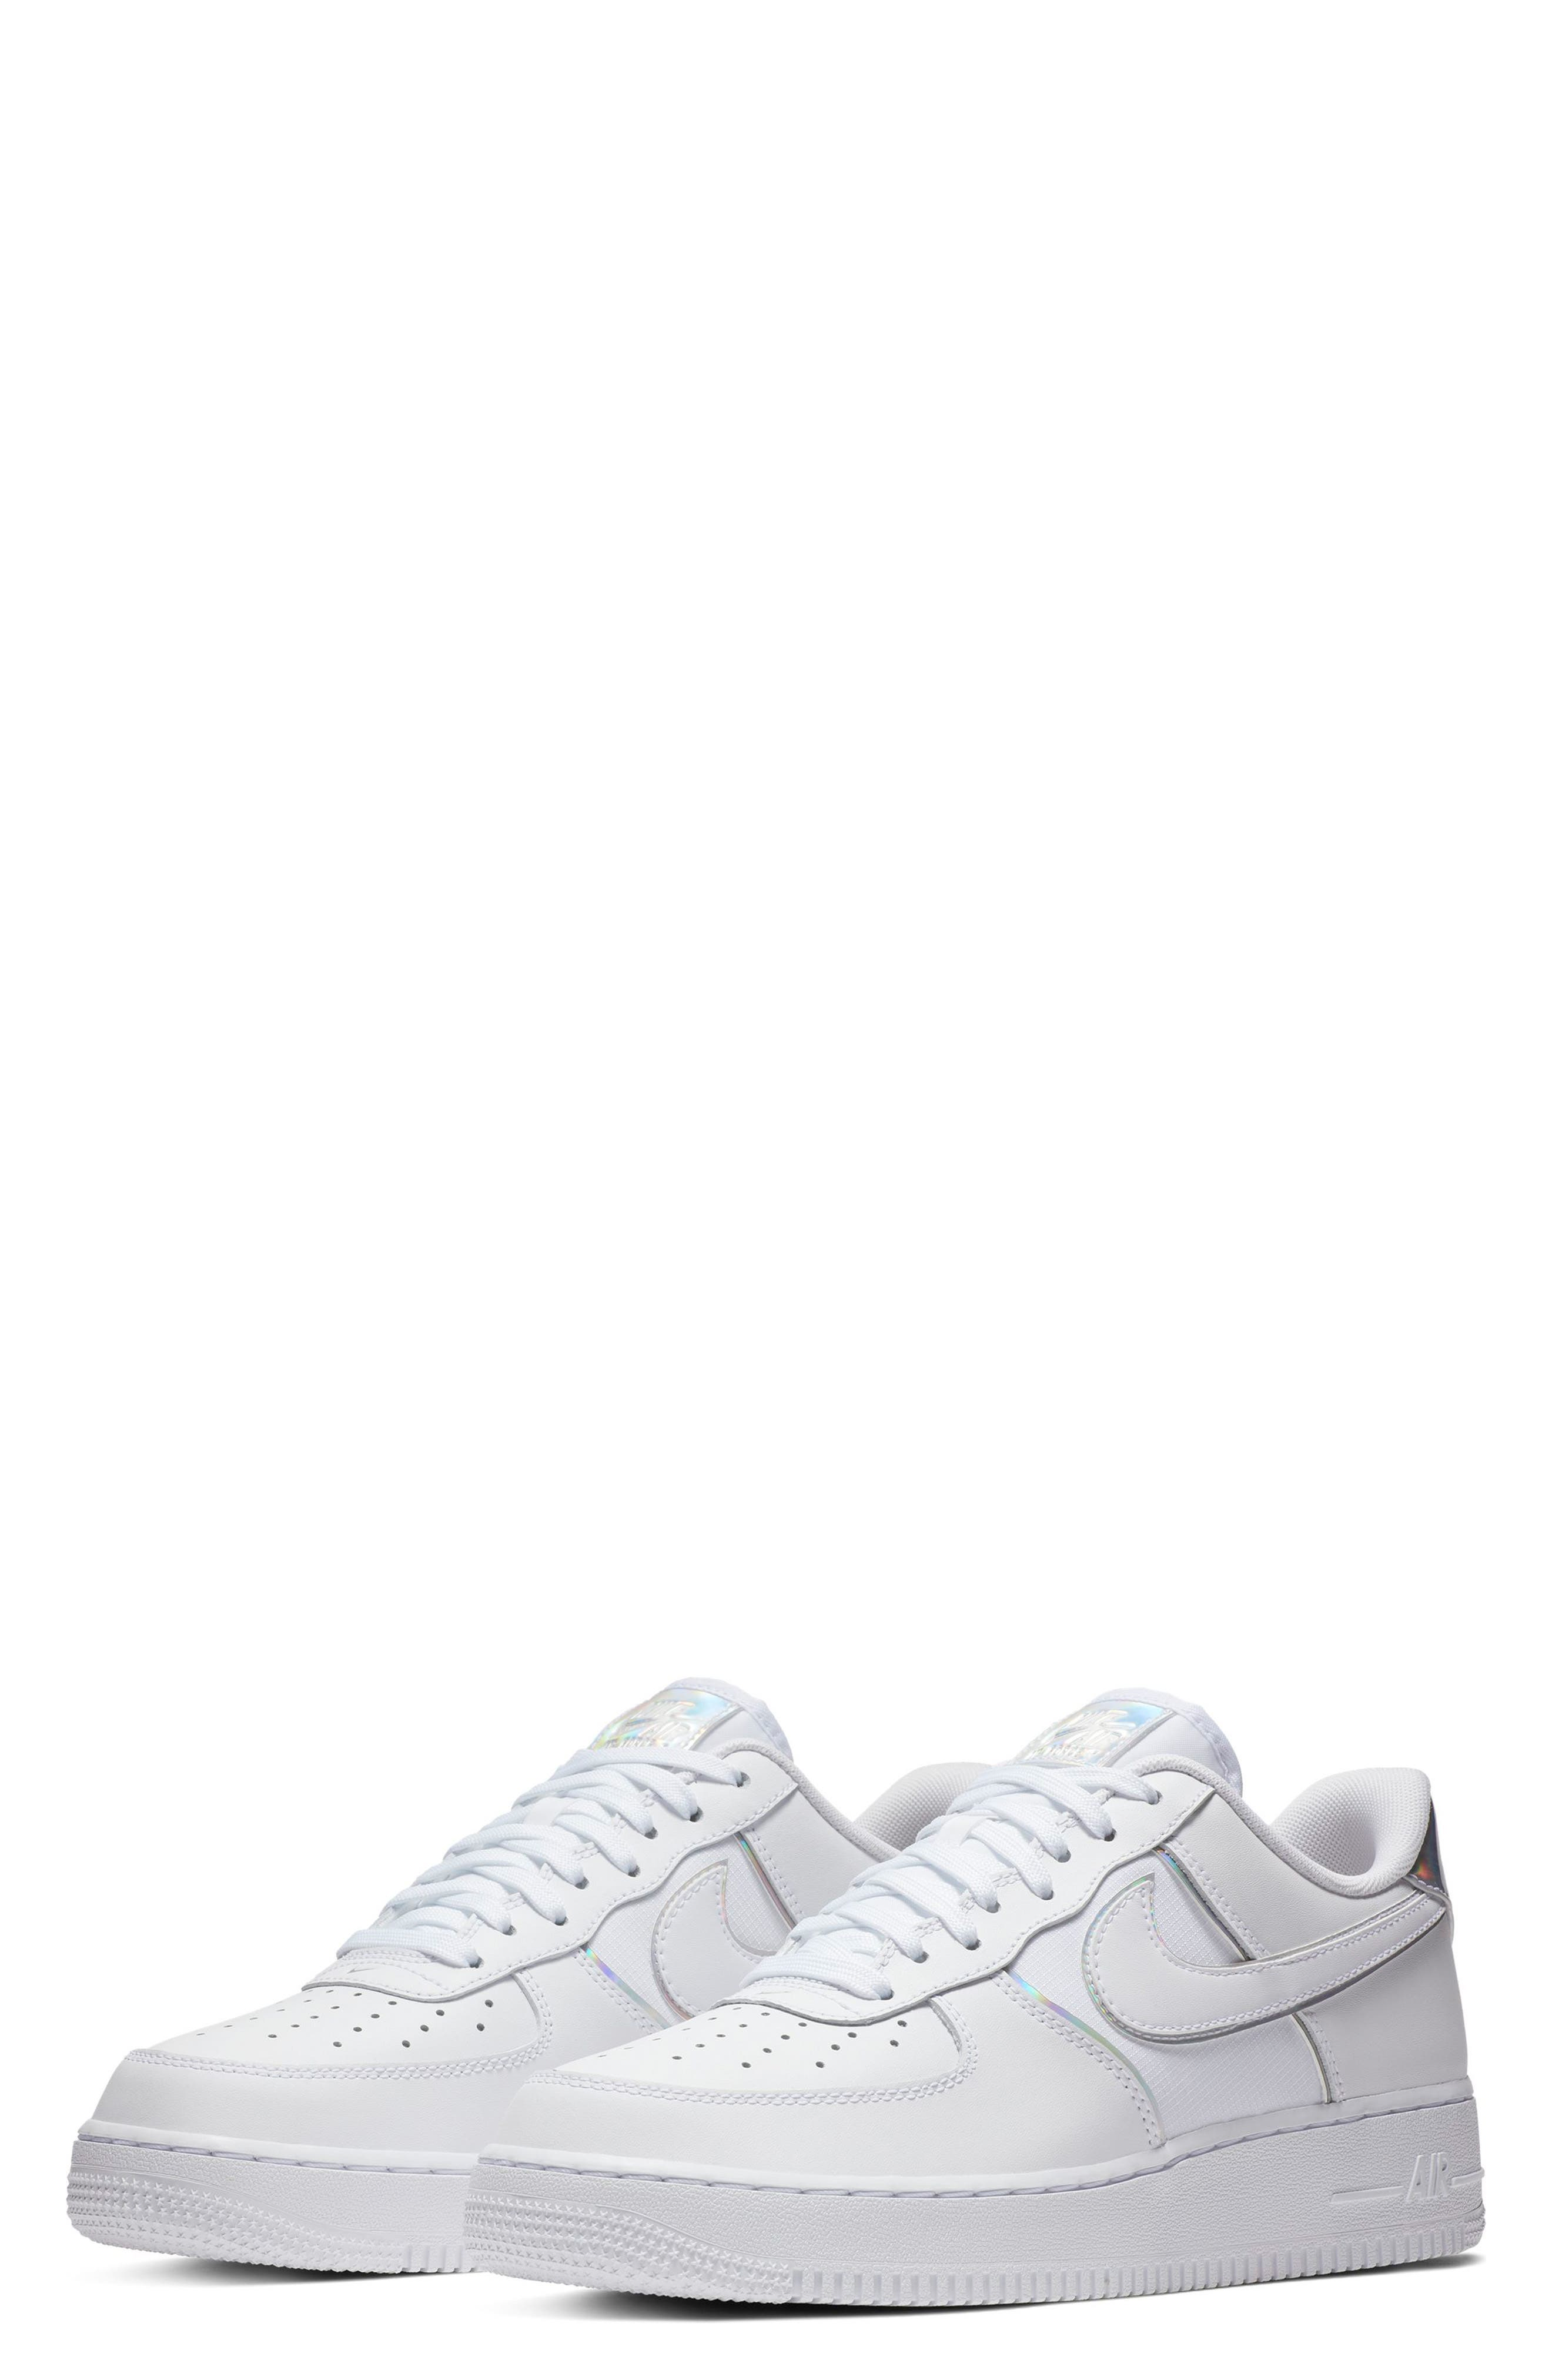 Air Force 1 '07 LV8 4 Sneaker,                             Main thumbnail 1, color,                             WHITE/ WHITE/ WHITE